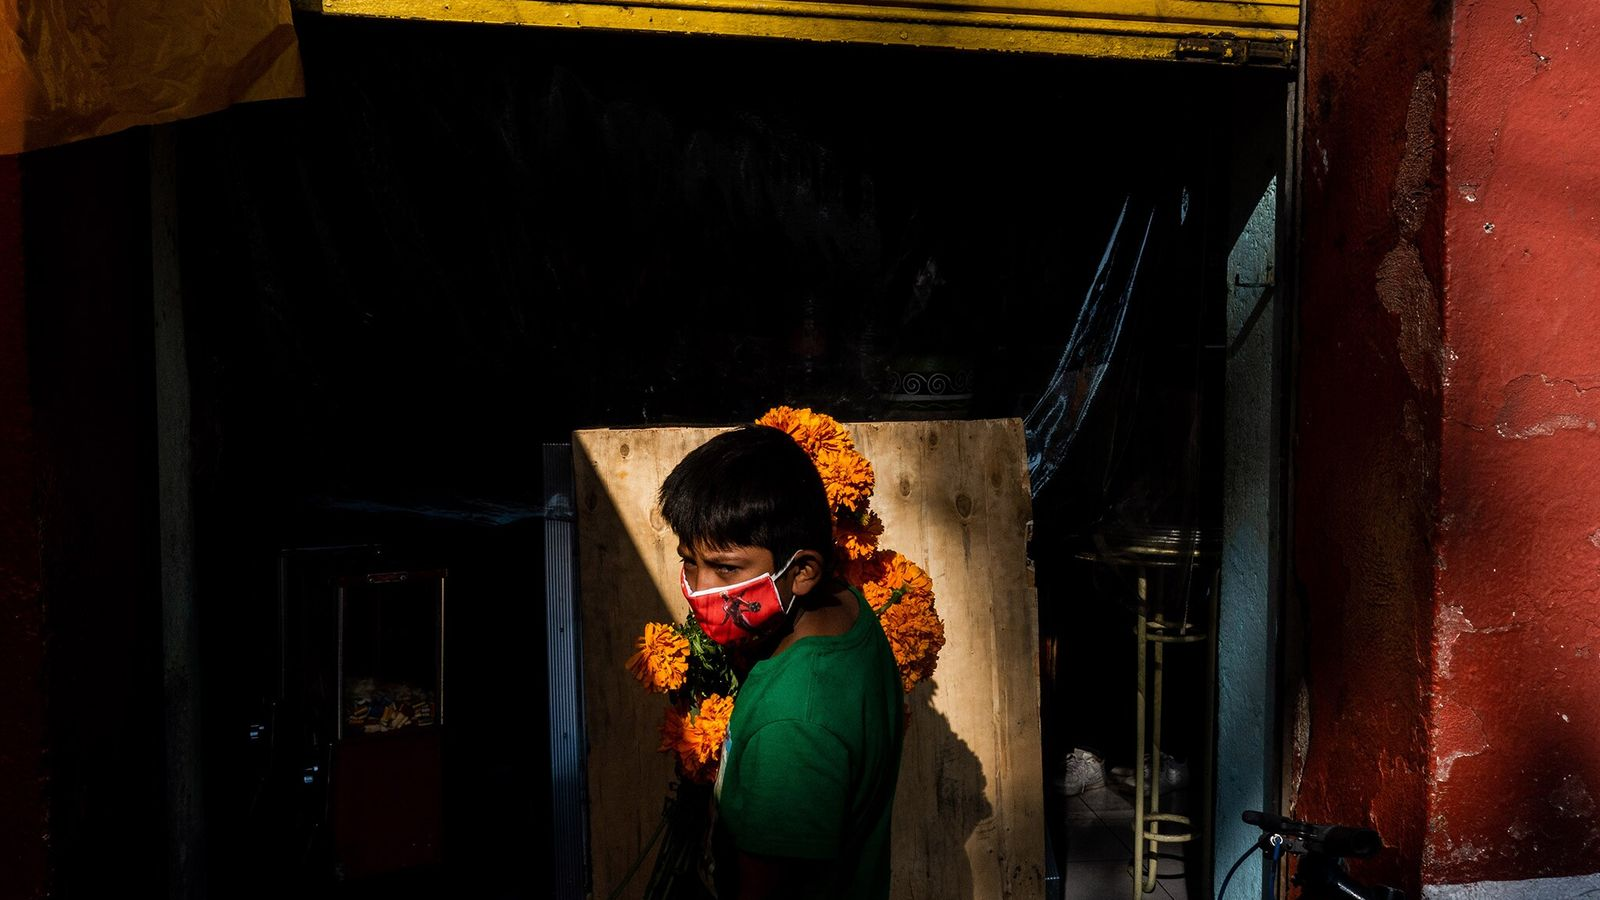 A young boy with a bouquet of marigolds waits for his mother outside a bakery as ...